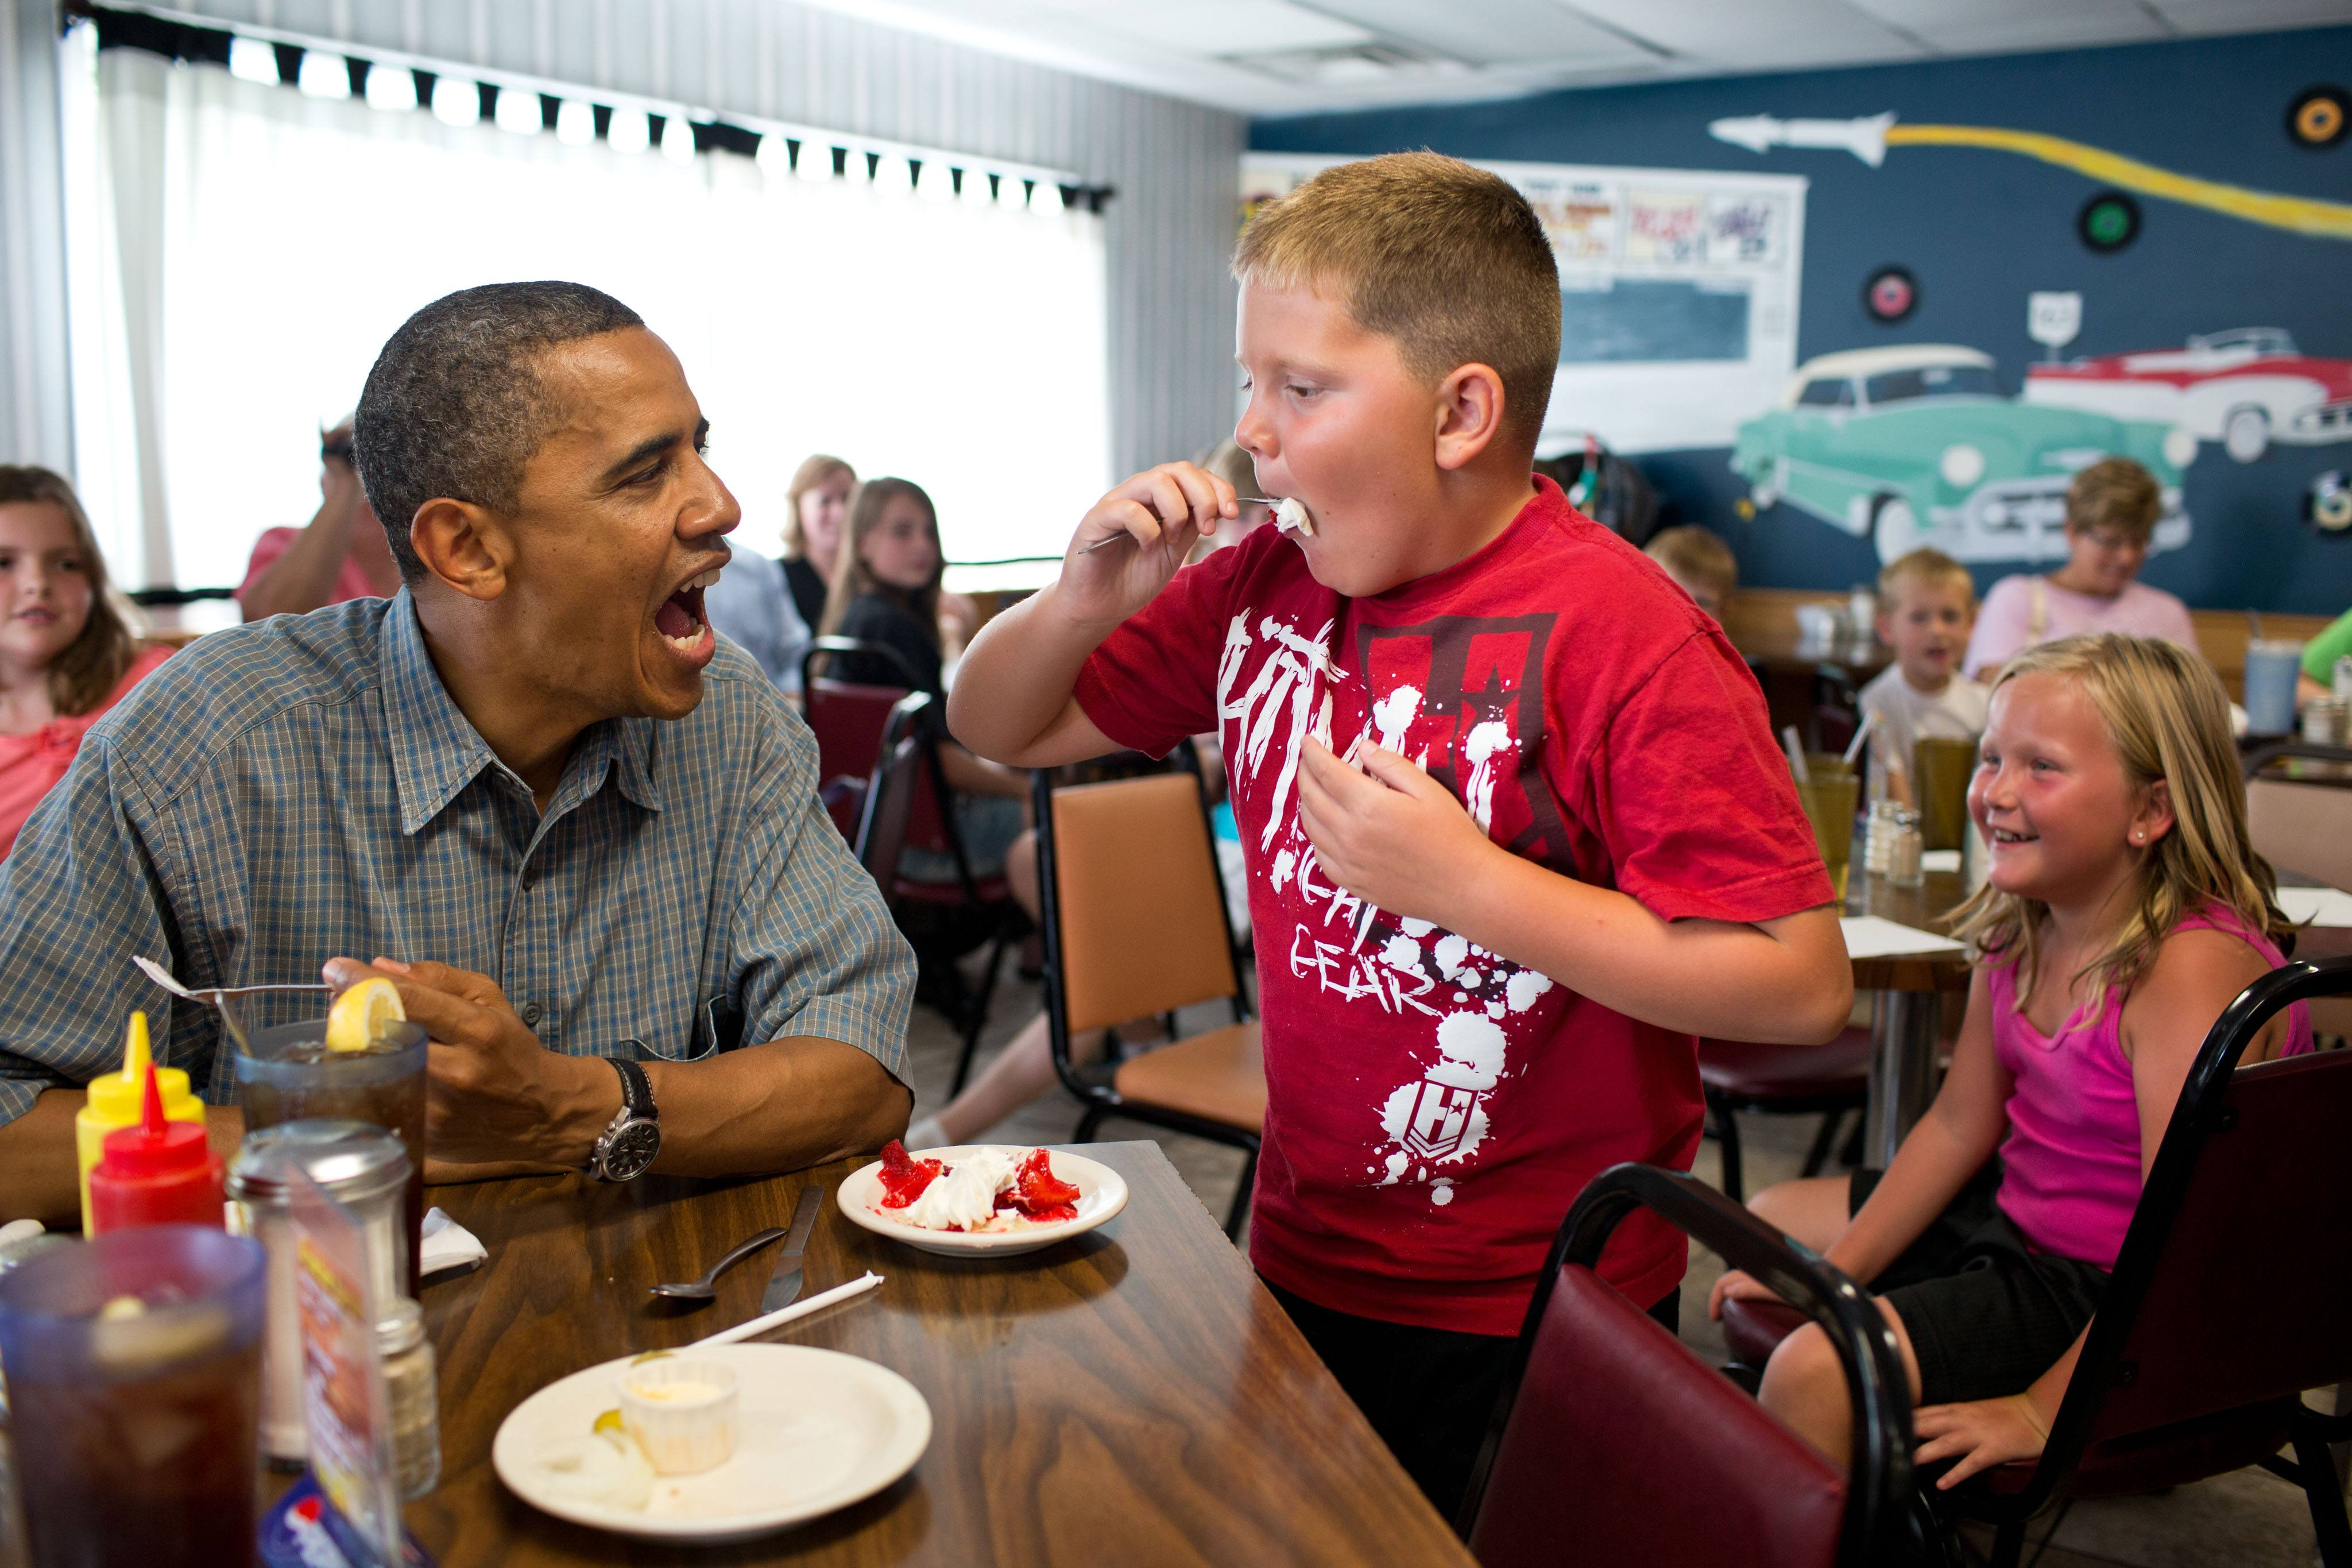 Barack Obama shares his pie with a child